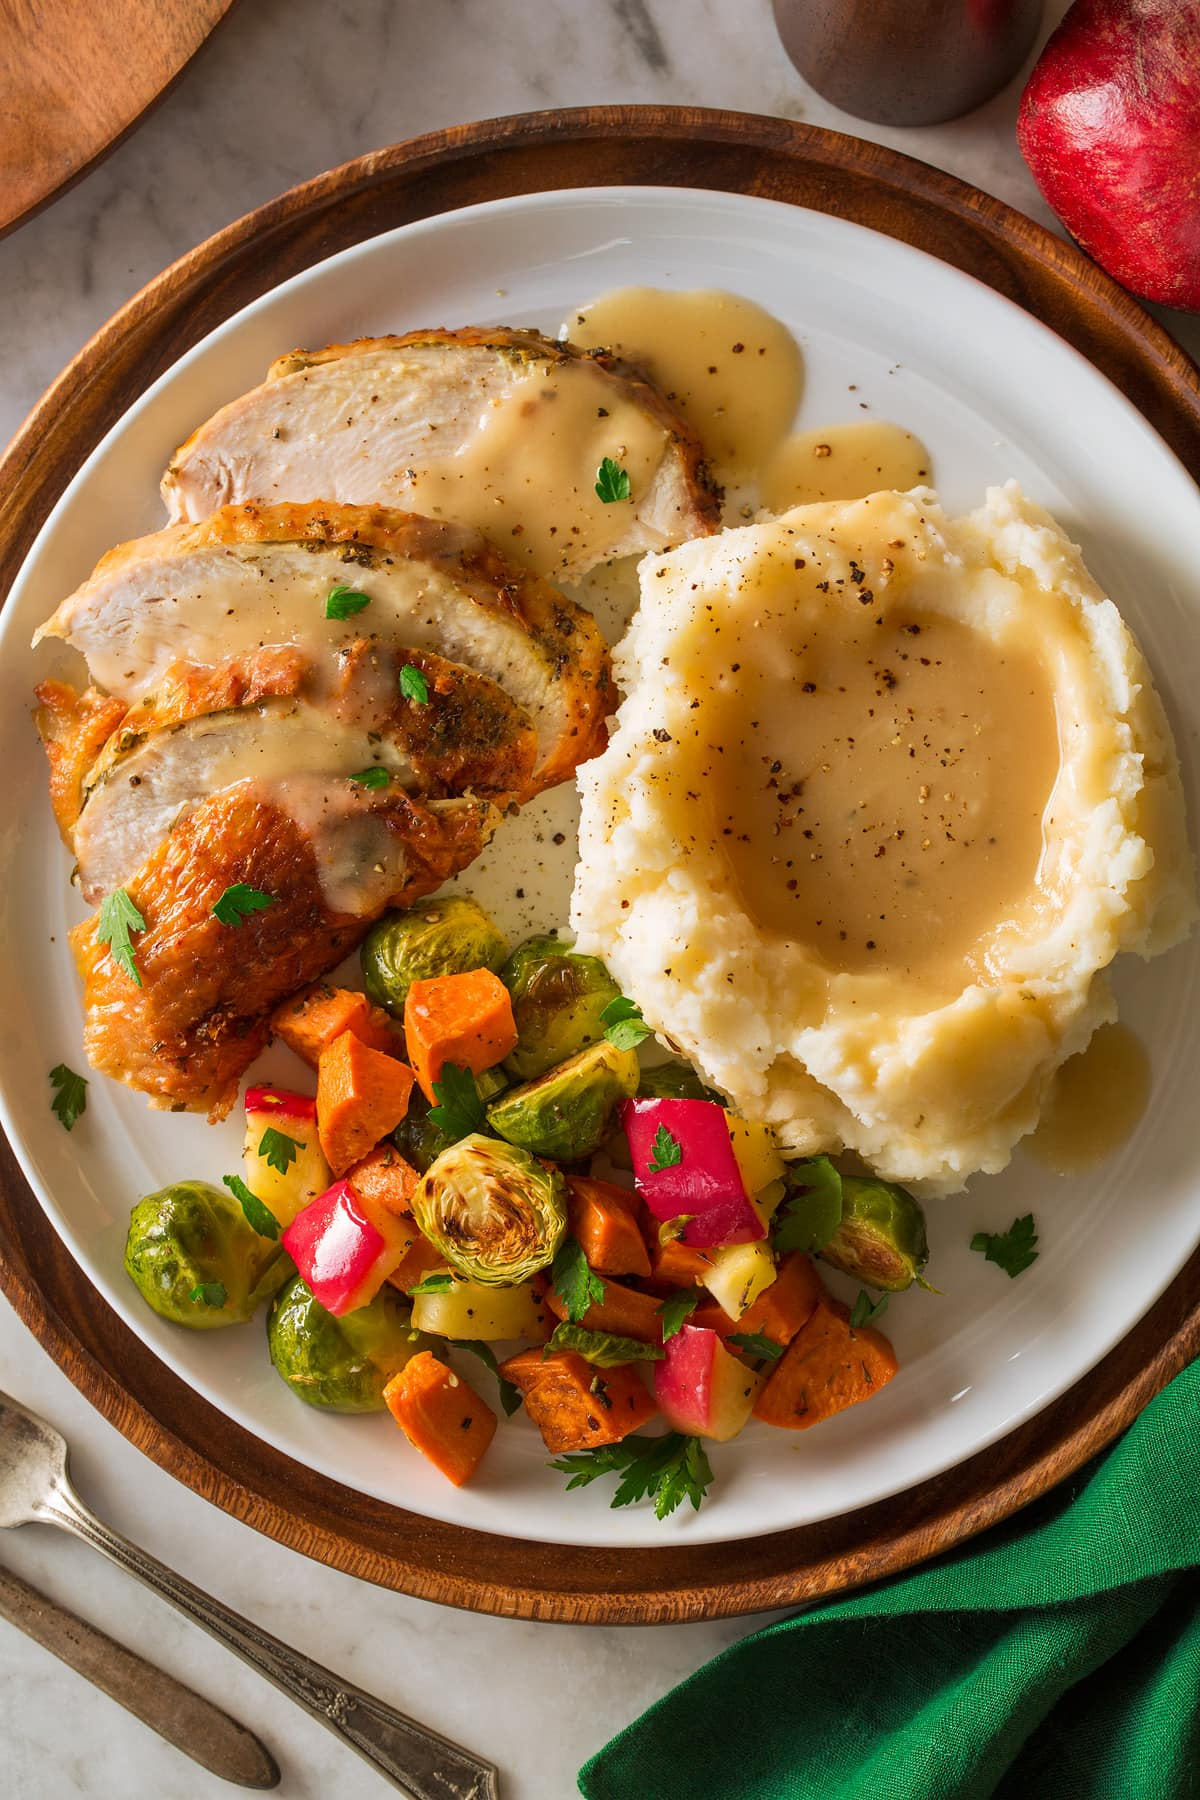 Roast Turkey Breast on a platter with a side of mashed potatoes and roasted vegetables.